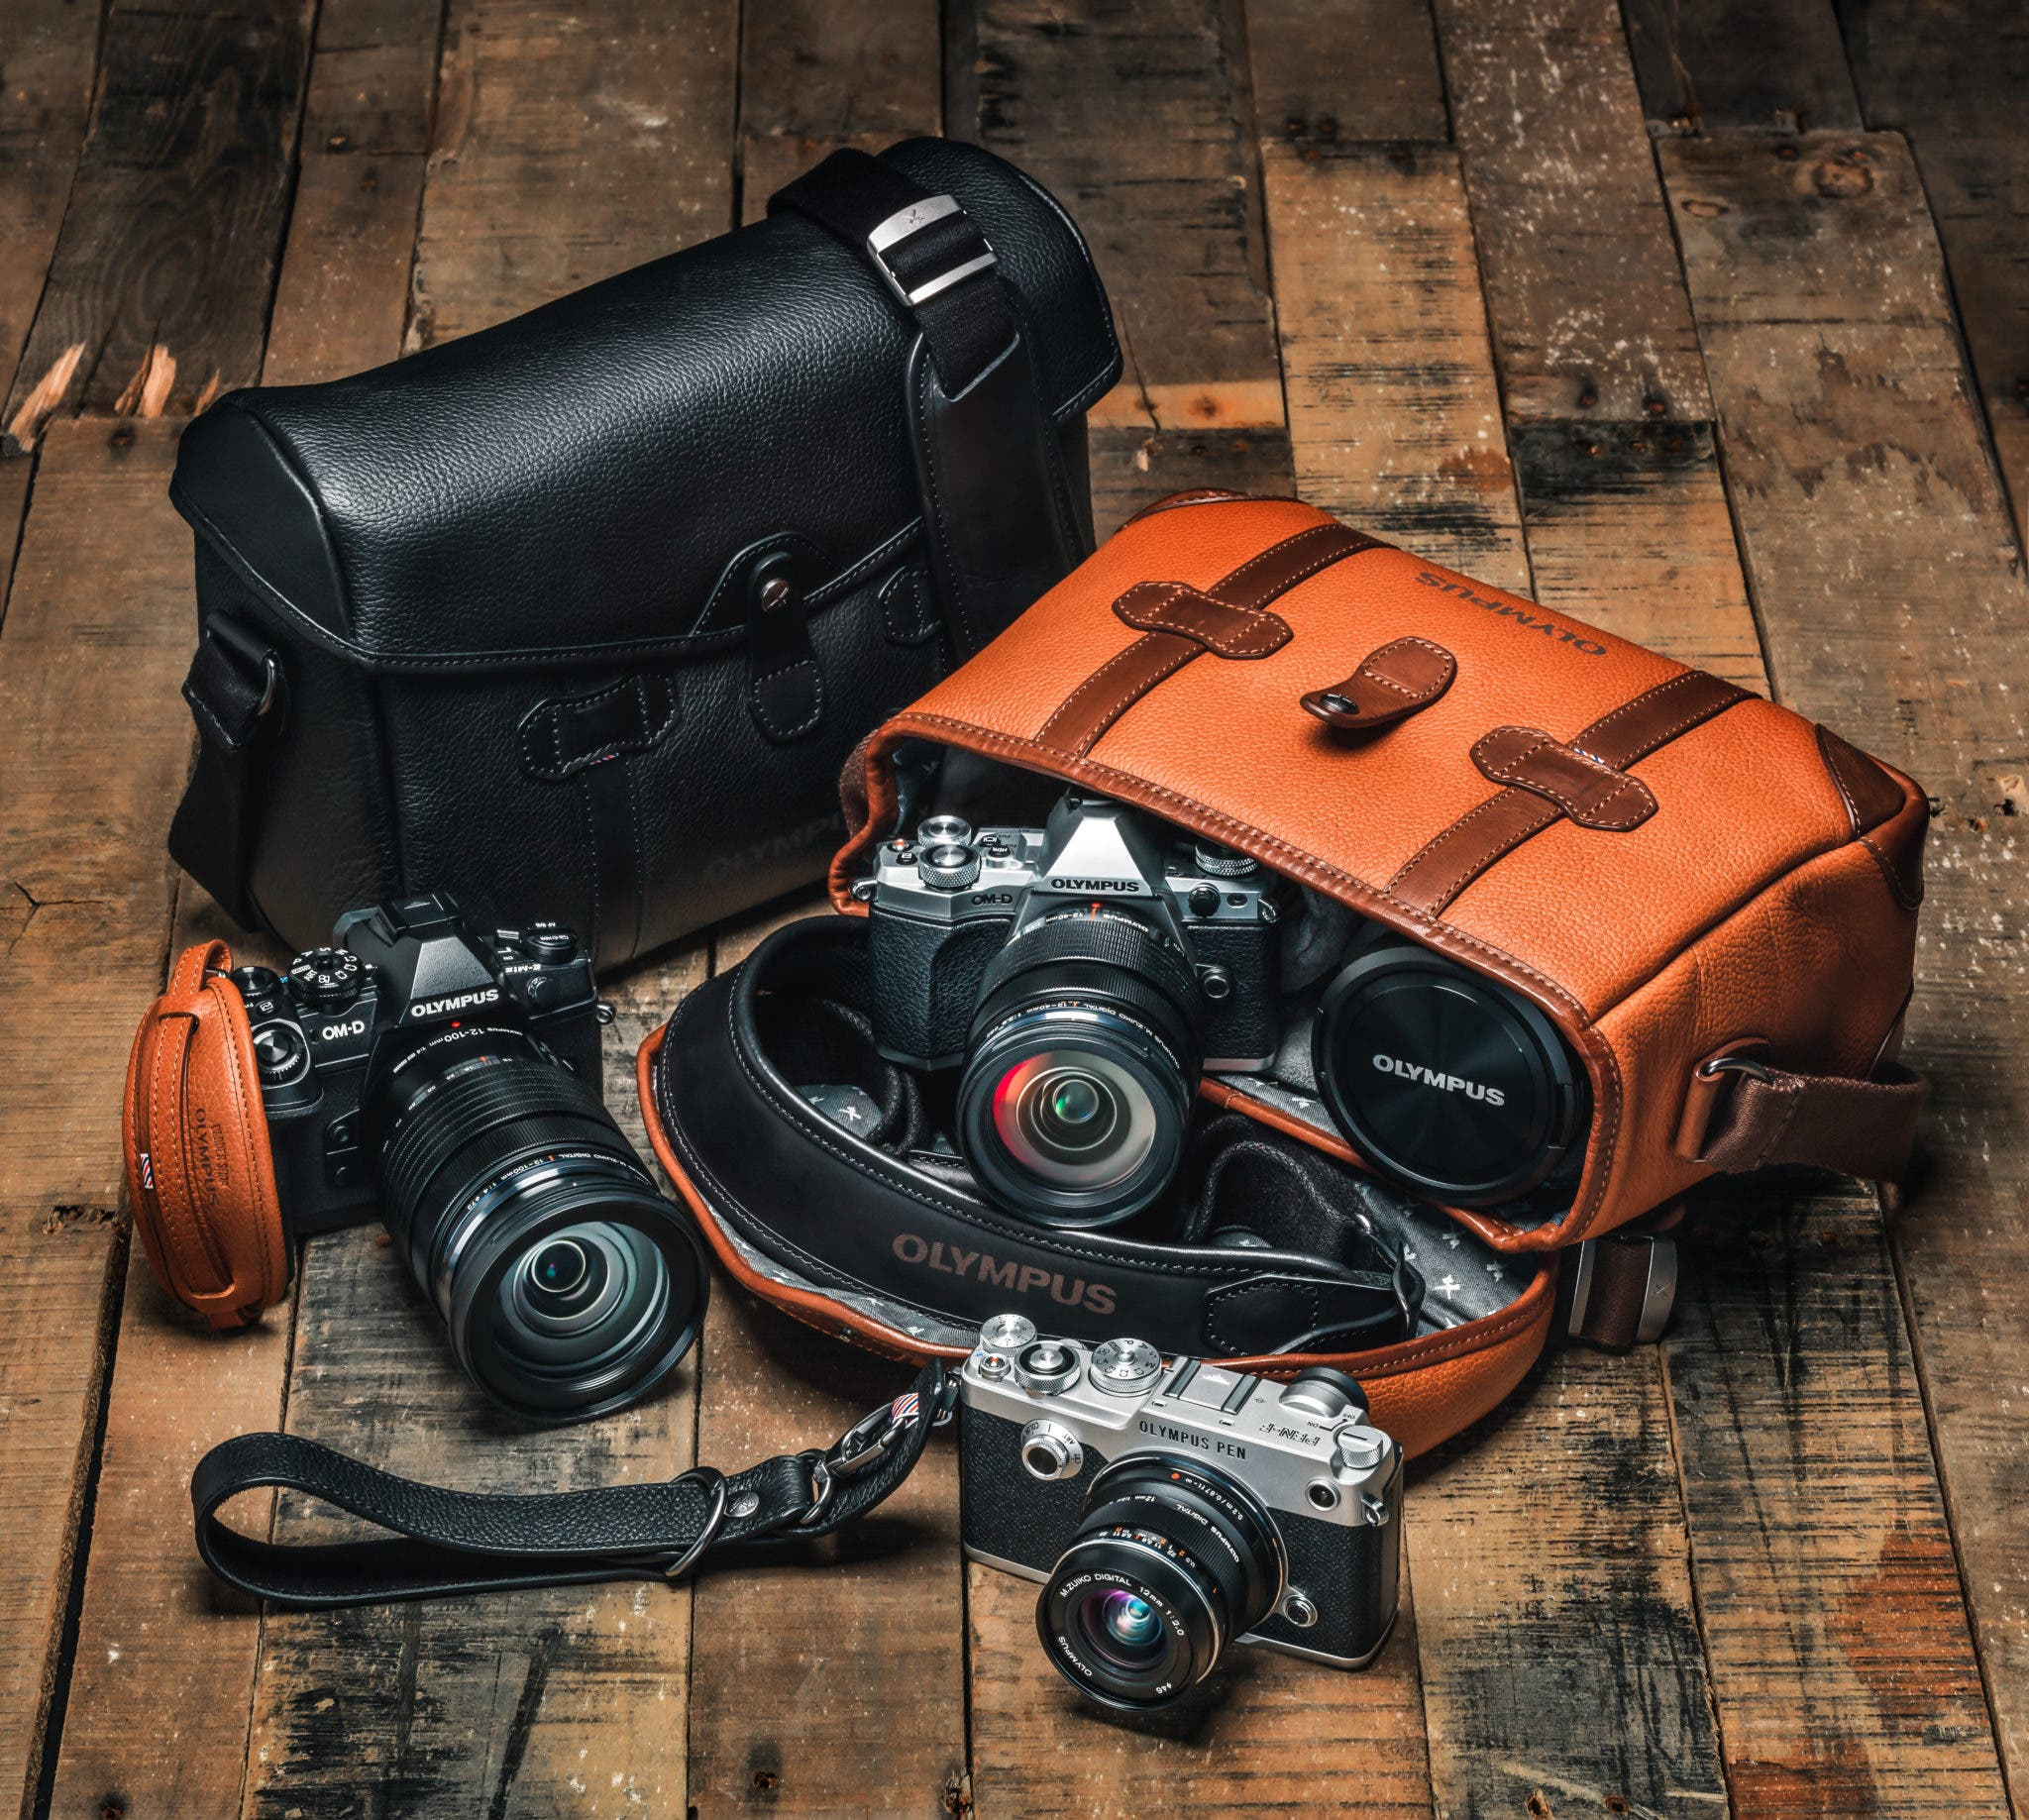 Olympus Releases Premium Handcrafted Camera Bags and Straps in Partnership with Barber Shop Bags